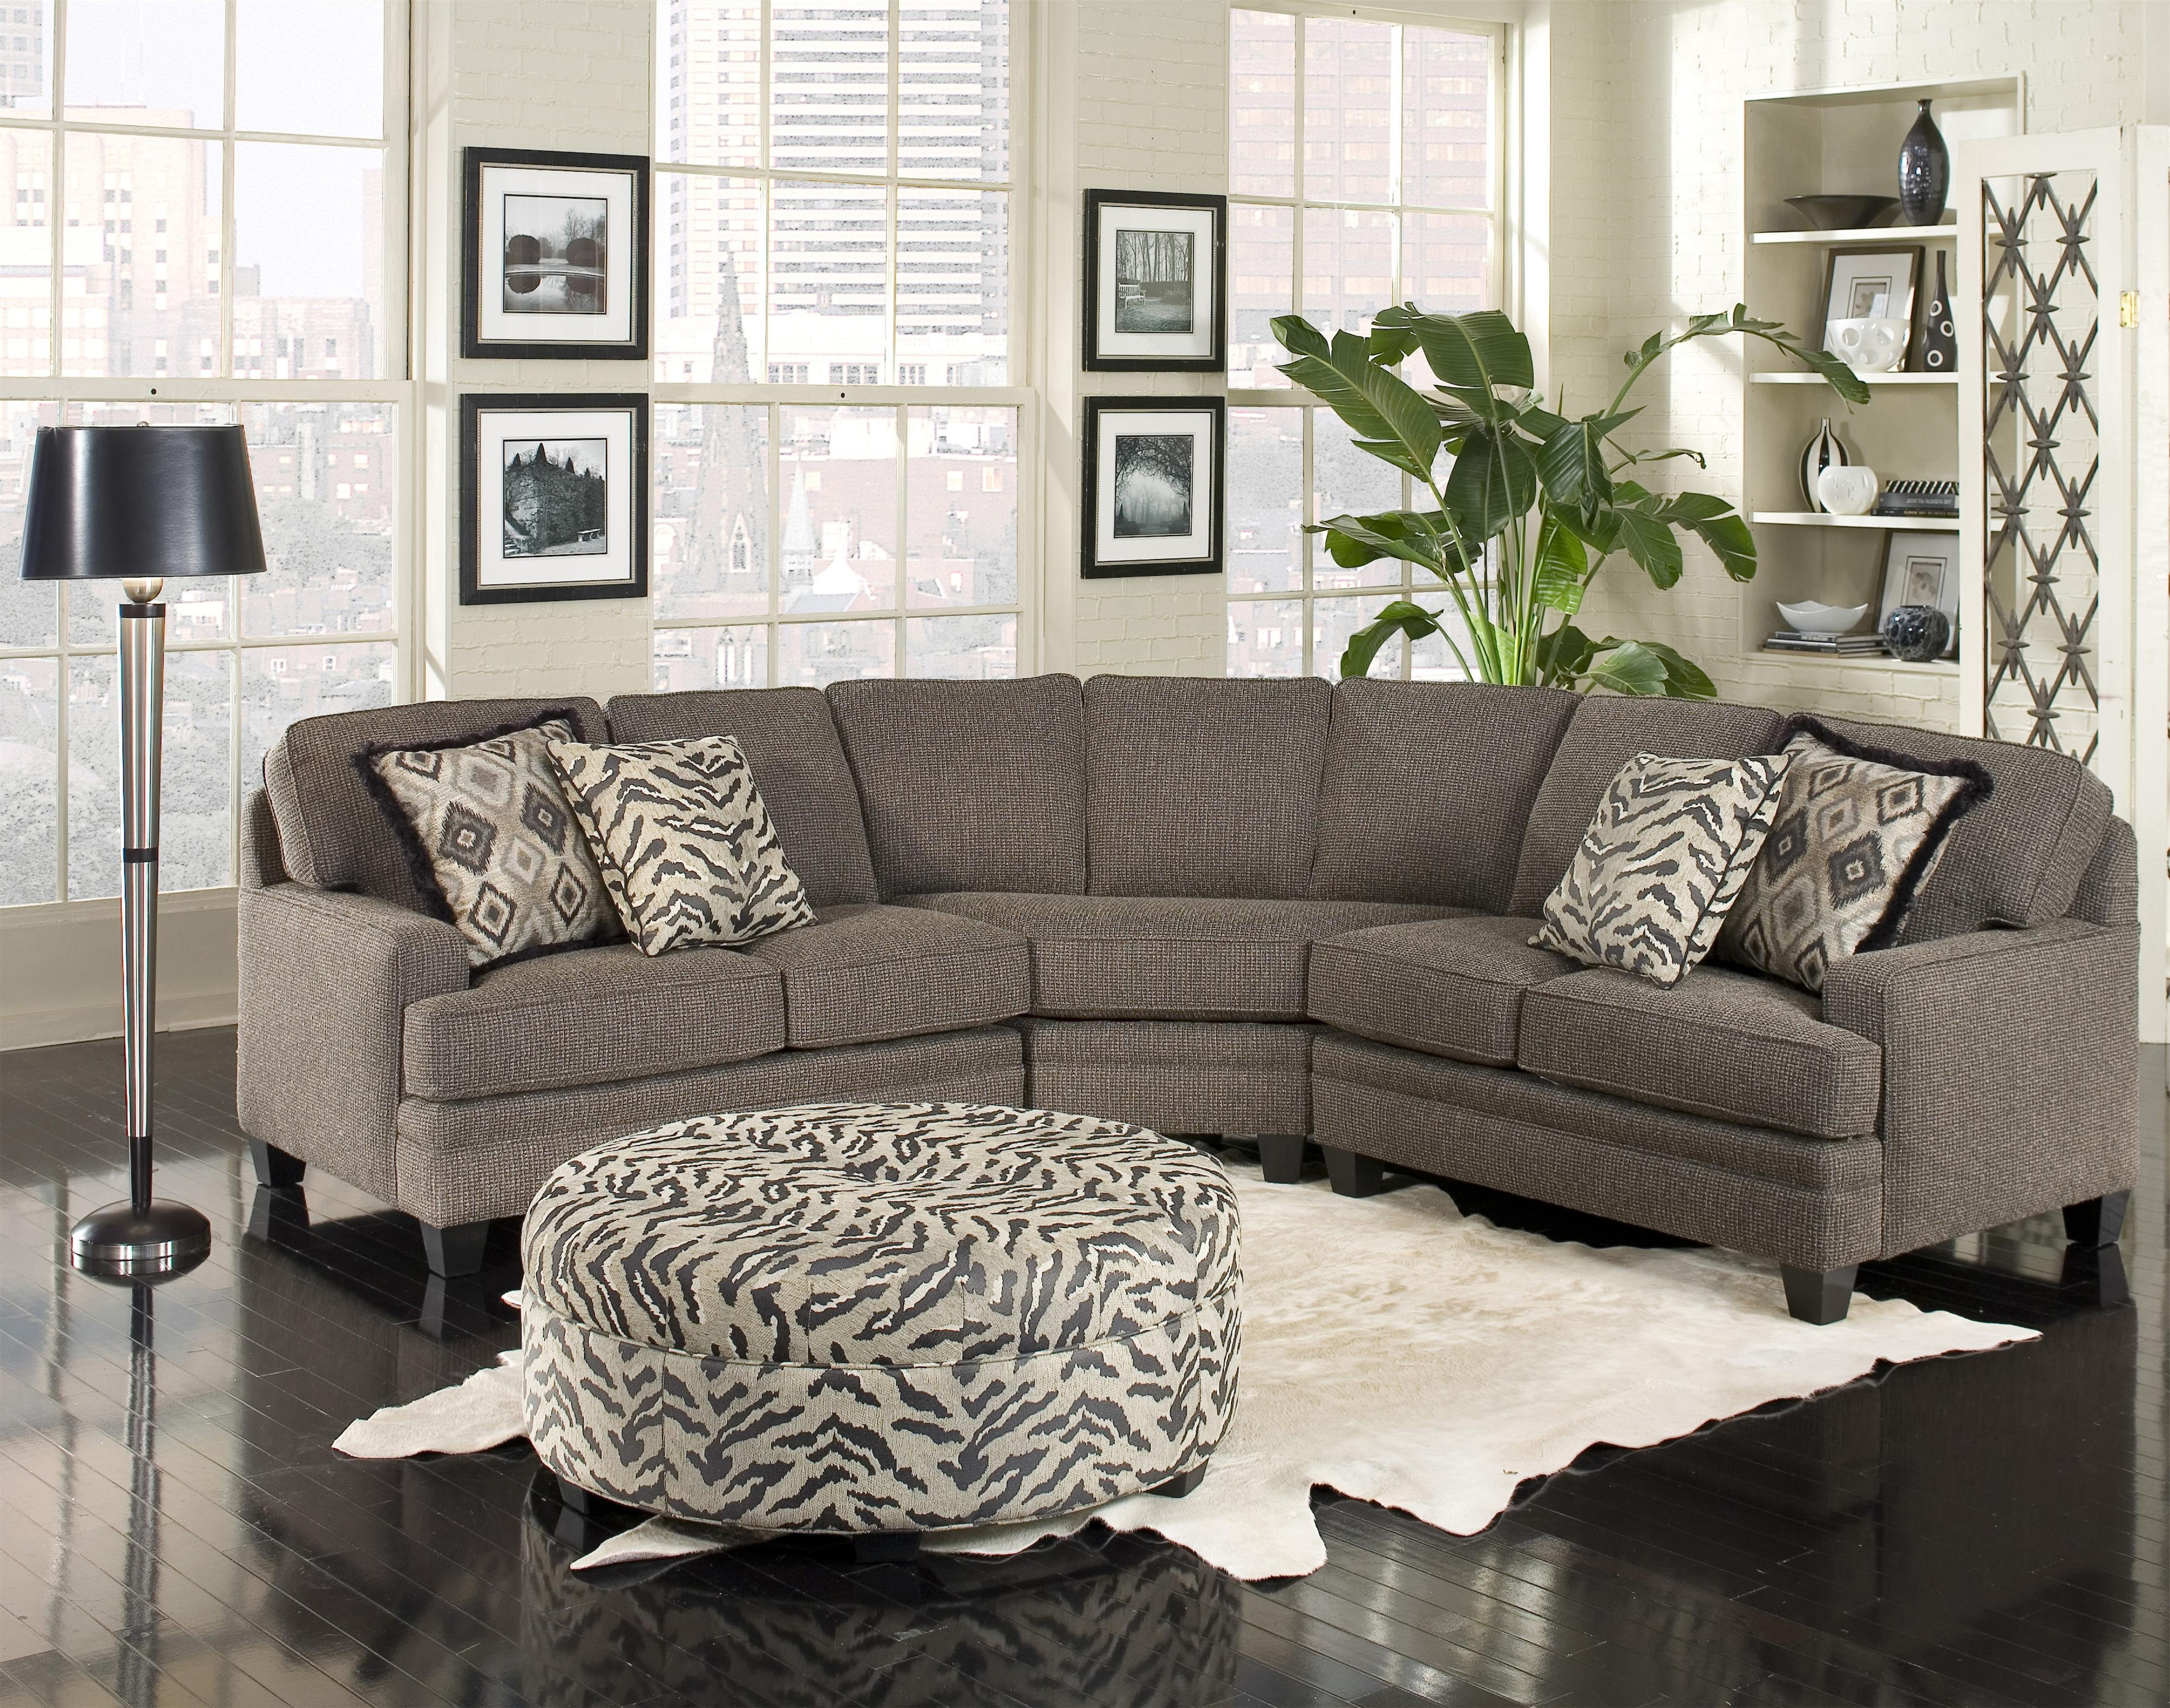 Harrisburg Pa Sectional Sofas With Most Recently Released Build Your Own (5000 Series) Five Person Sectional Sofa With (View 10 of 20)